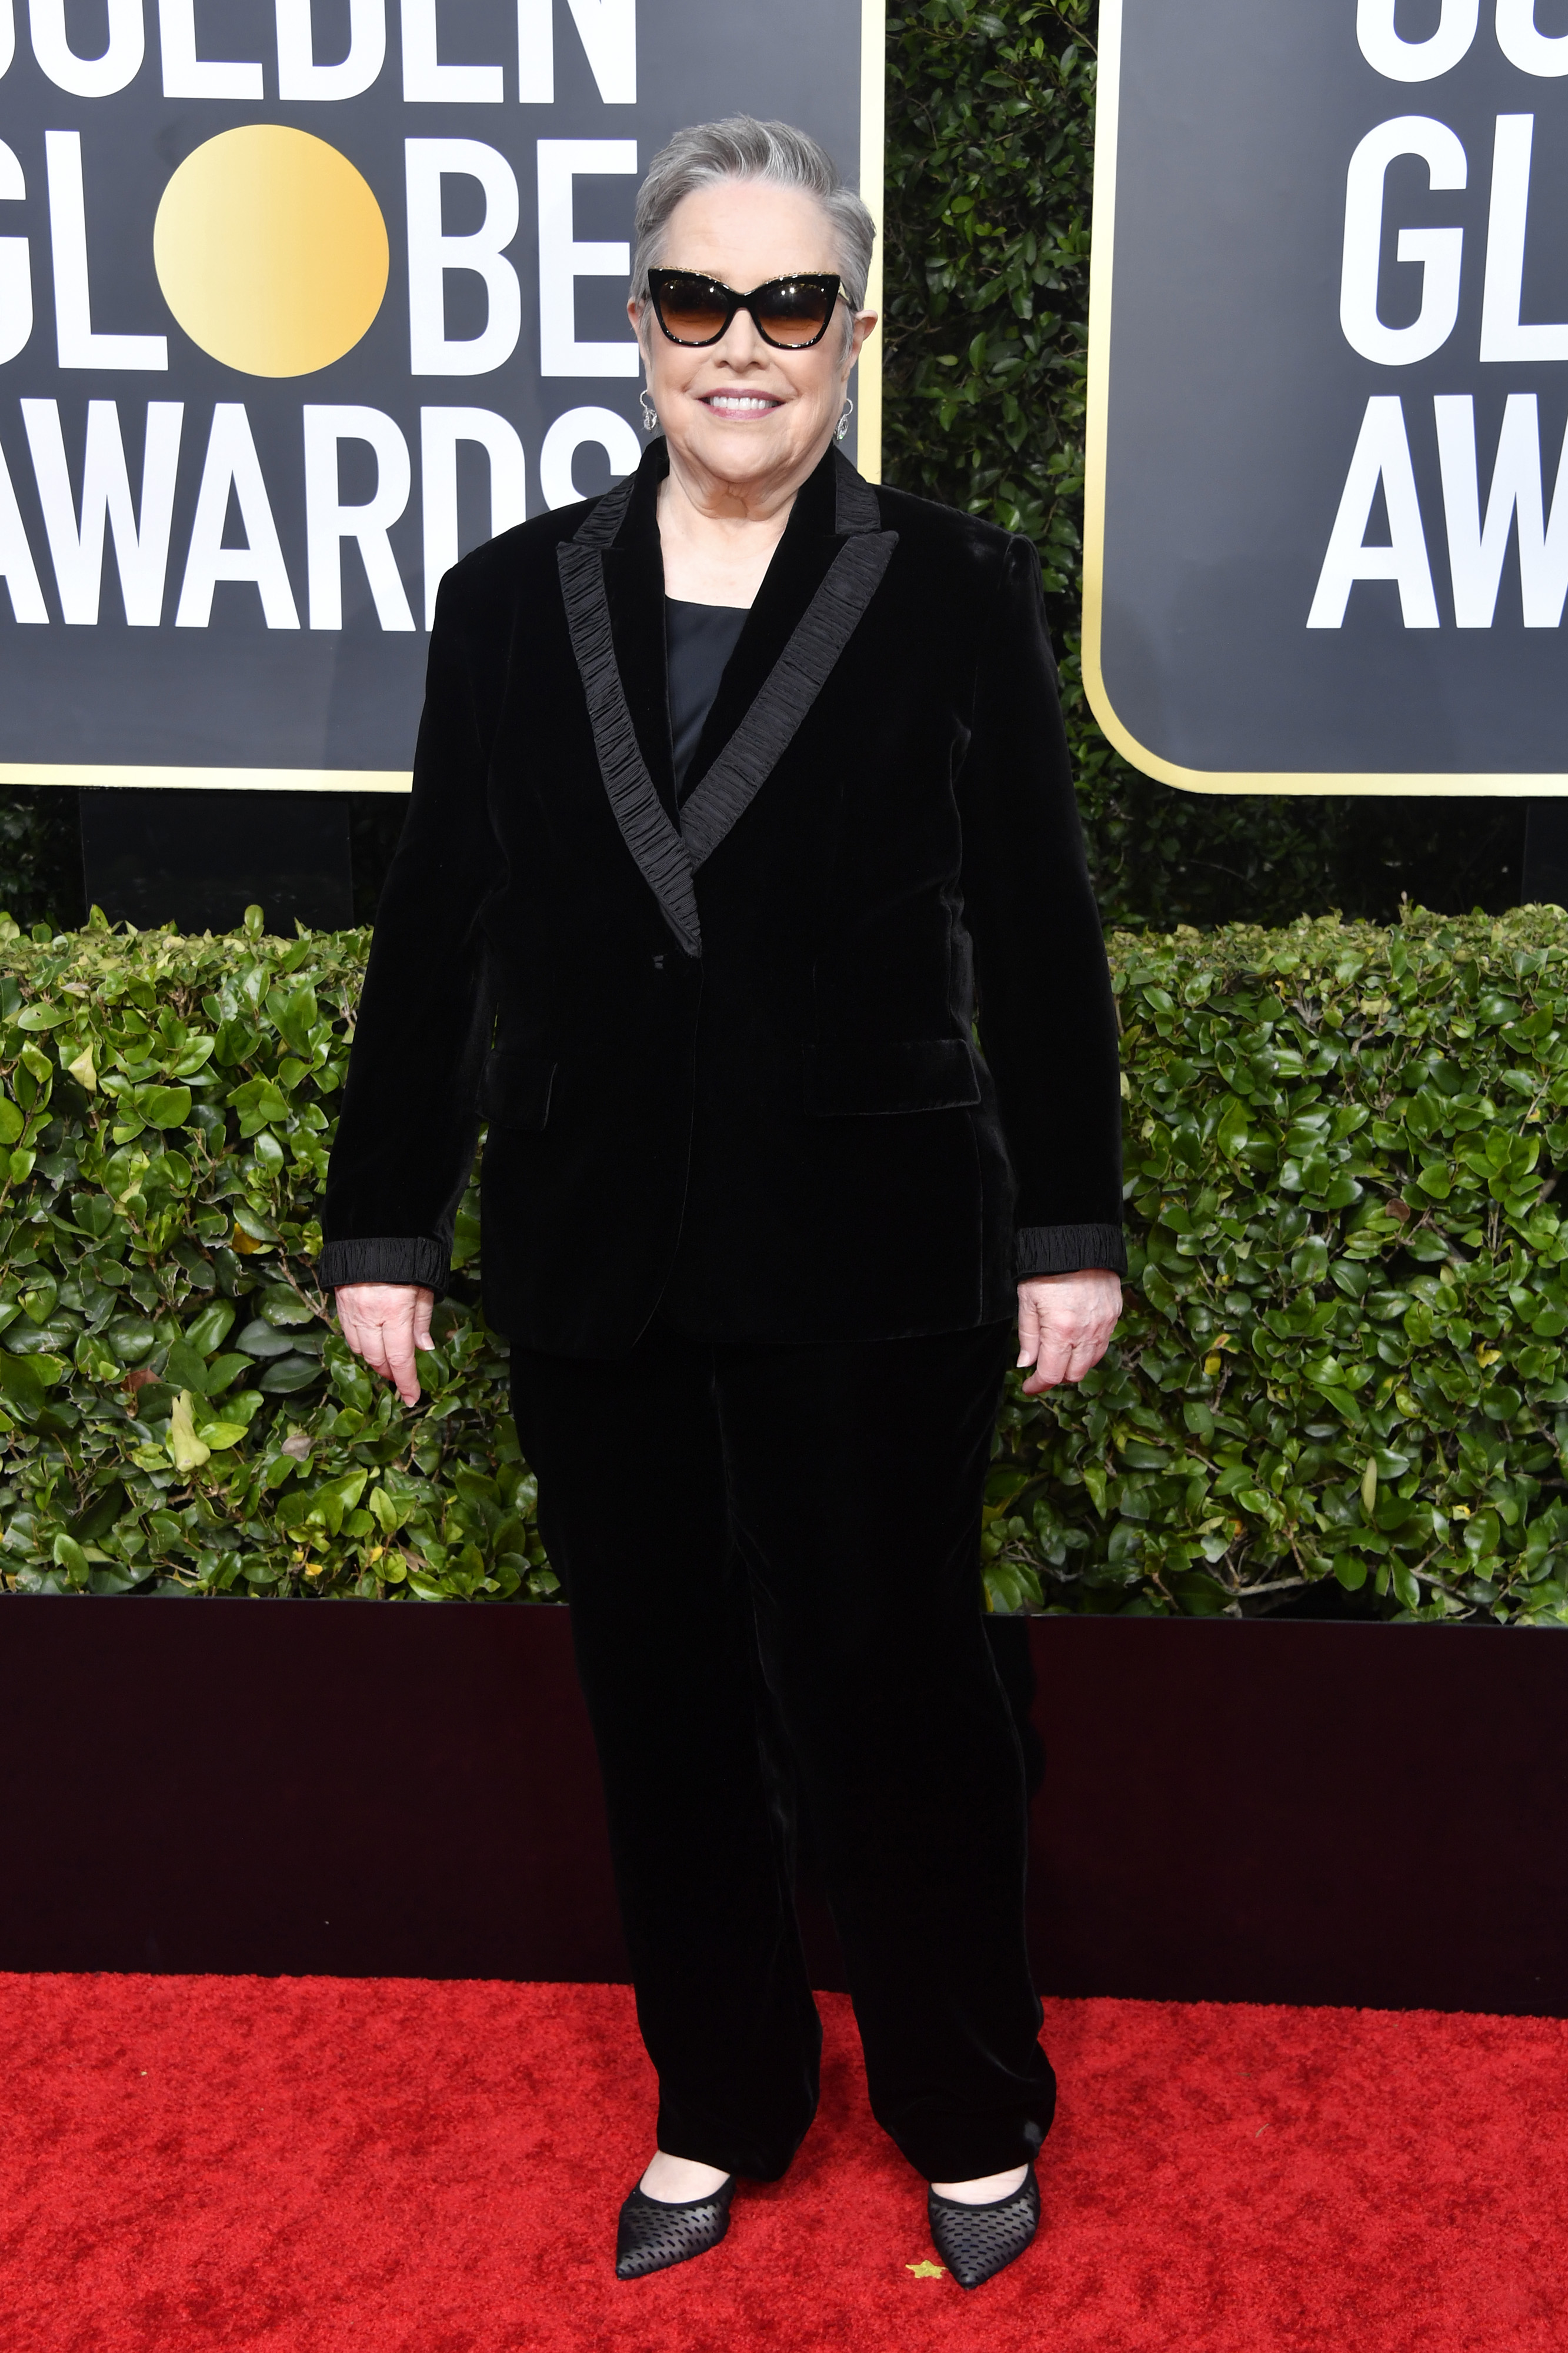 BEVERLY HILLS, CALIFORNIA - JANUARY 05: Kathy Bates attends the 77th Annual Golden Globe Awards at The Beverly Hilton Hotel on January 05, 2020 in Beverly Hills, California. (Photo by Frazer Harrison/Getty Images)